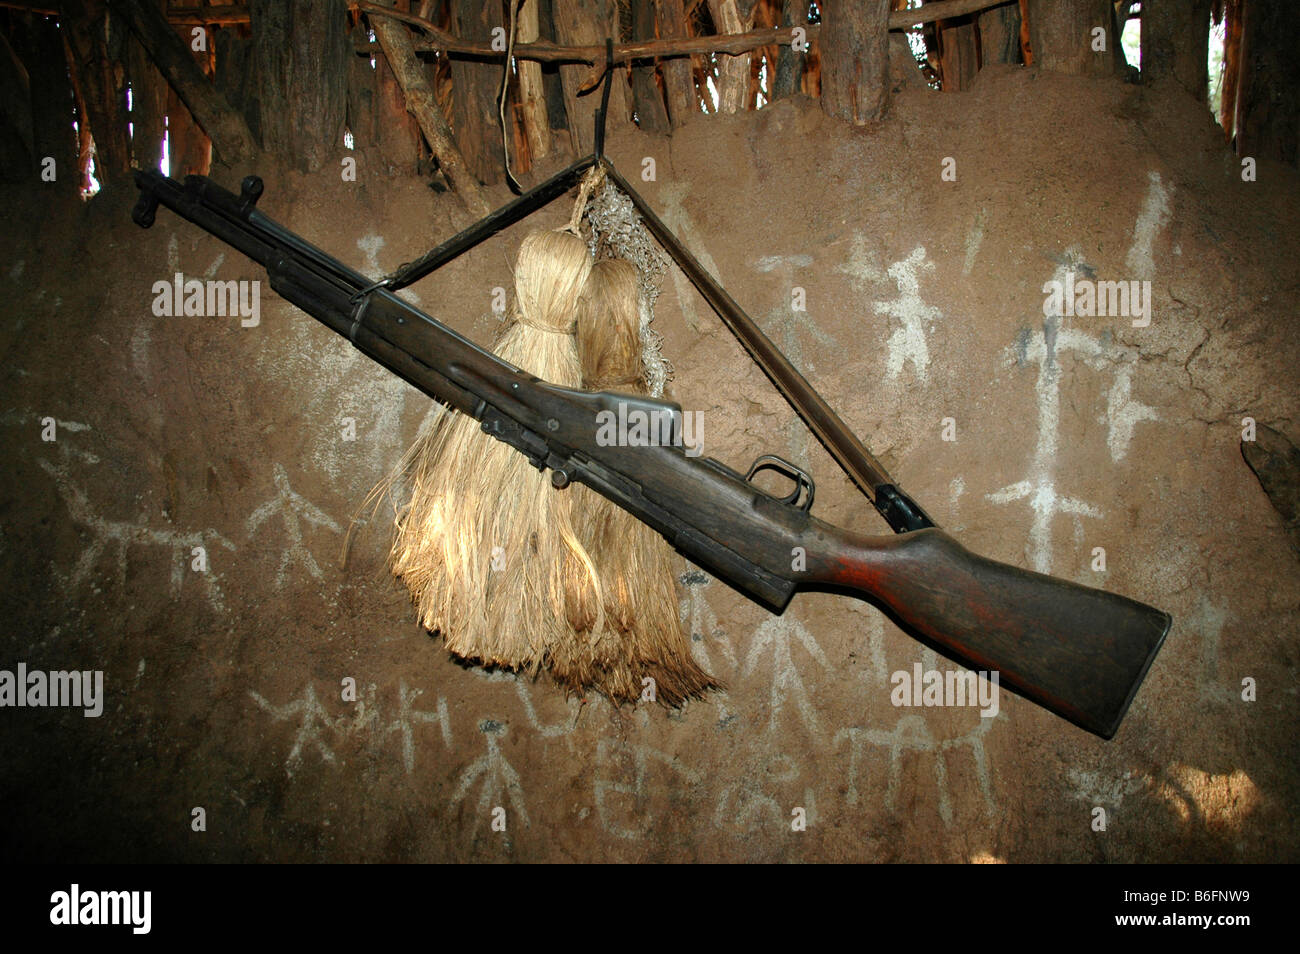 Carbine Stock Photos Amp Carbine Stock Images Alamy